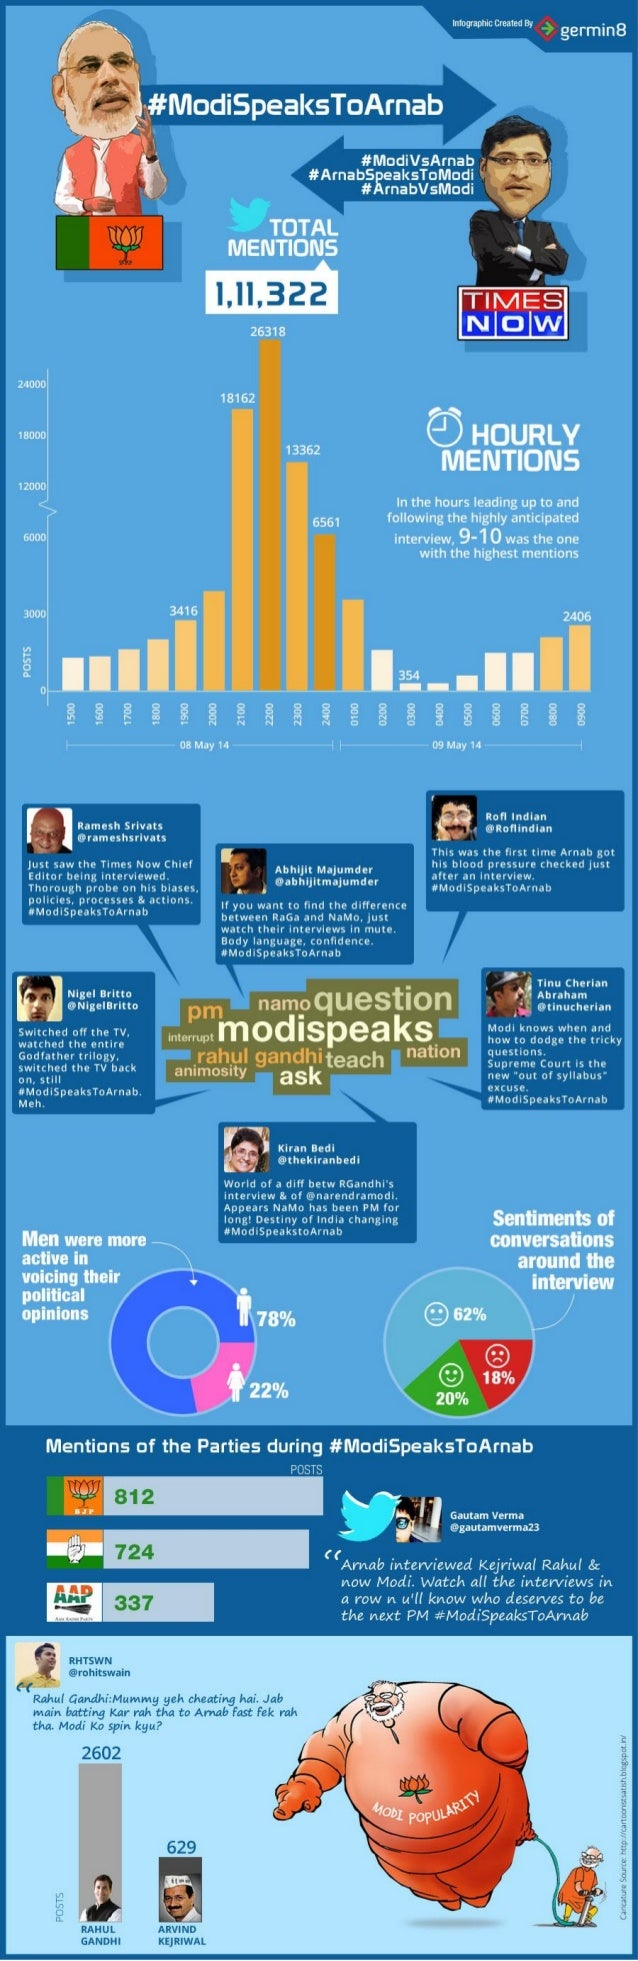 #ModiSpeaksToArnab - Social Media analysis in an Infographic in the lead up to #Elections2014